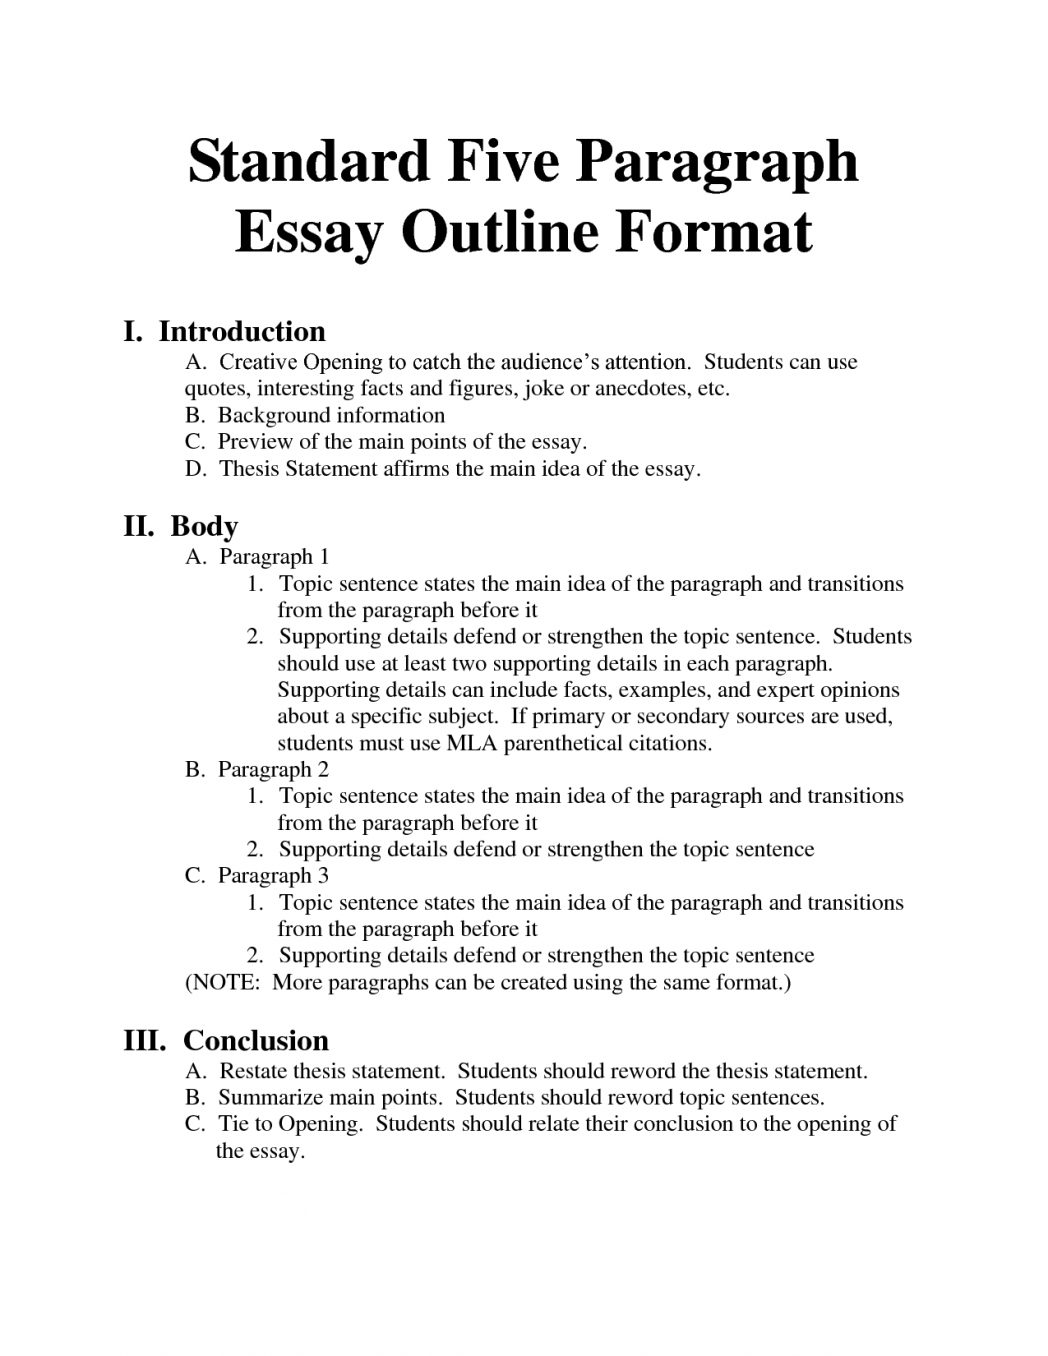 008 College Level Essay Outline Writings And Essaysow To Write Standard Format Bing Imagesomeschool Pintere Good Informative Introduction Argumentative Narrative Descriptive Persuasive 1048x1356 Impressive How A Steps Full